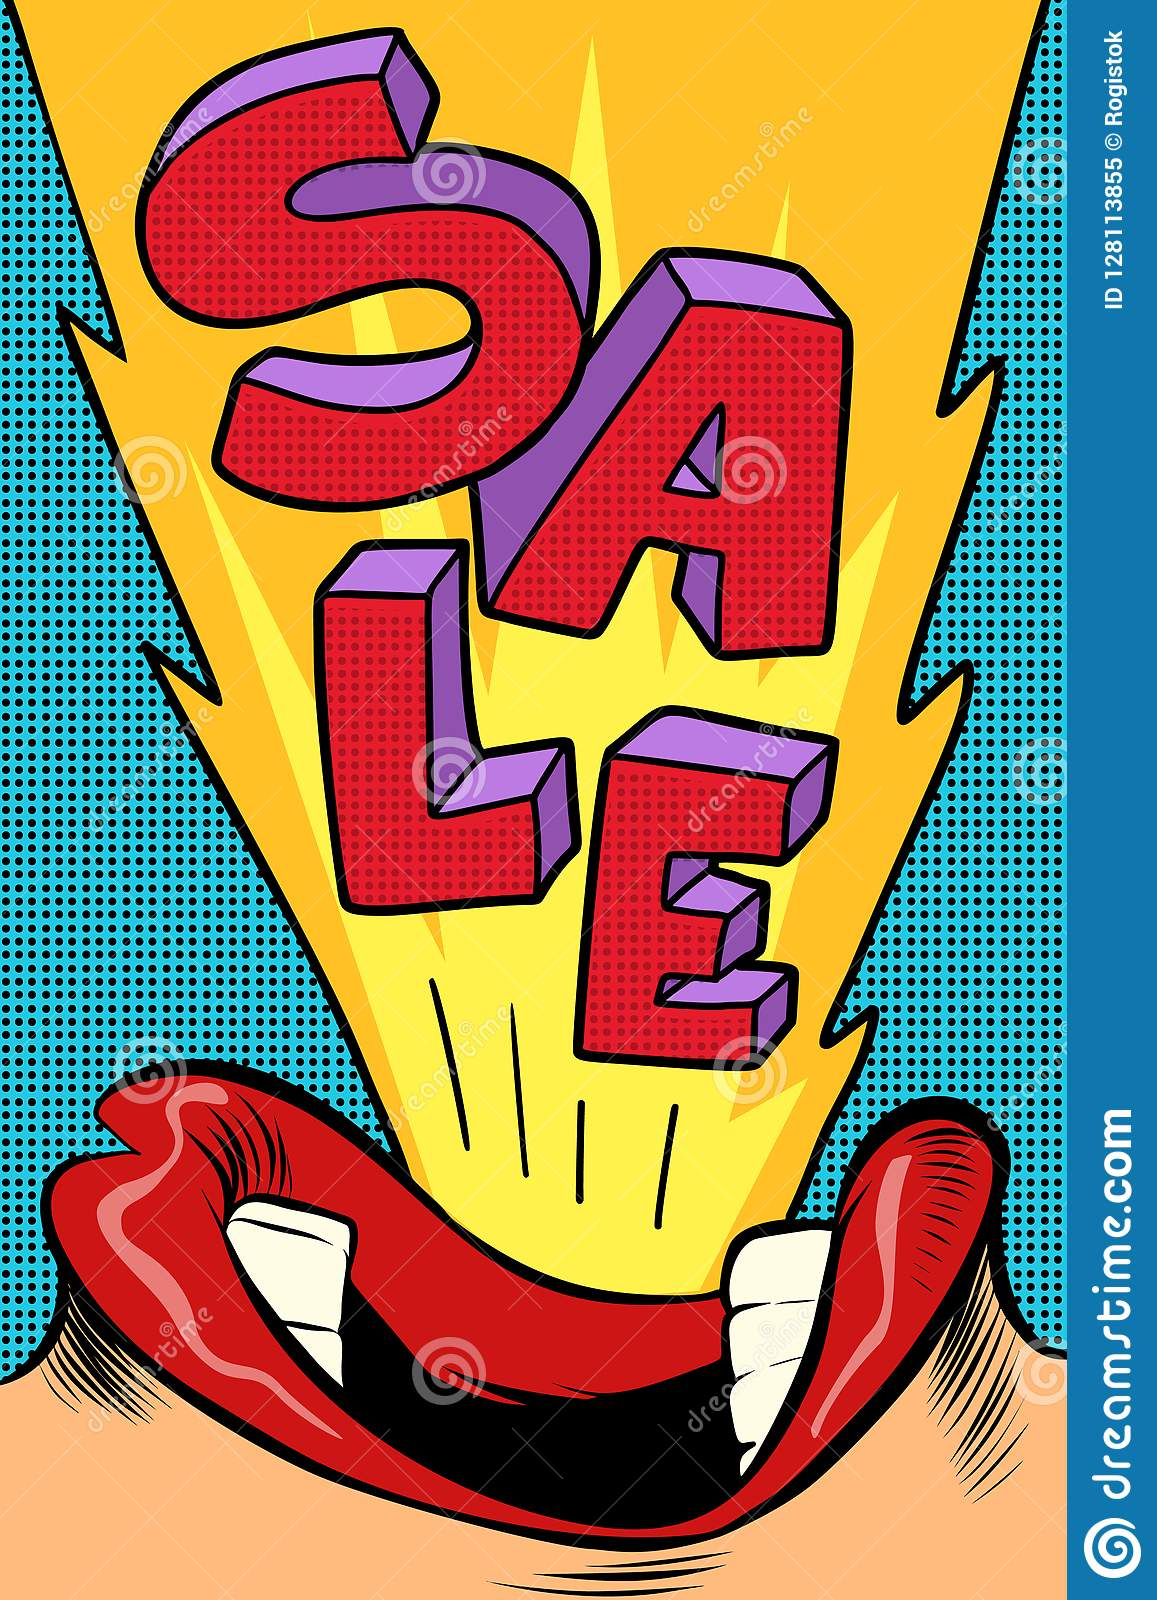 Sale Pop Art Style Female Mouth Stock Vector Illustration Of